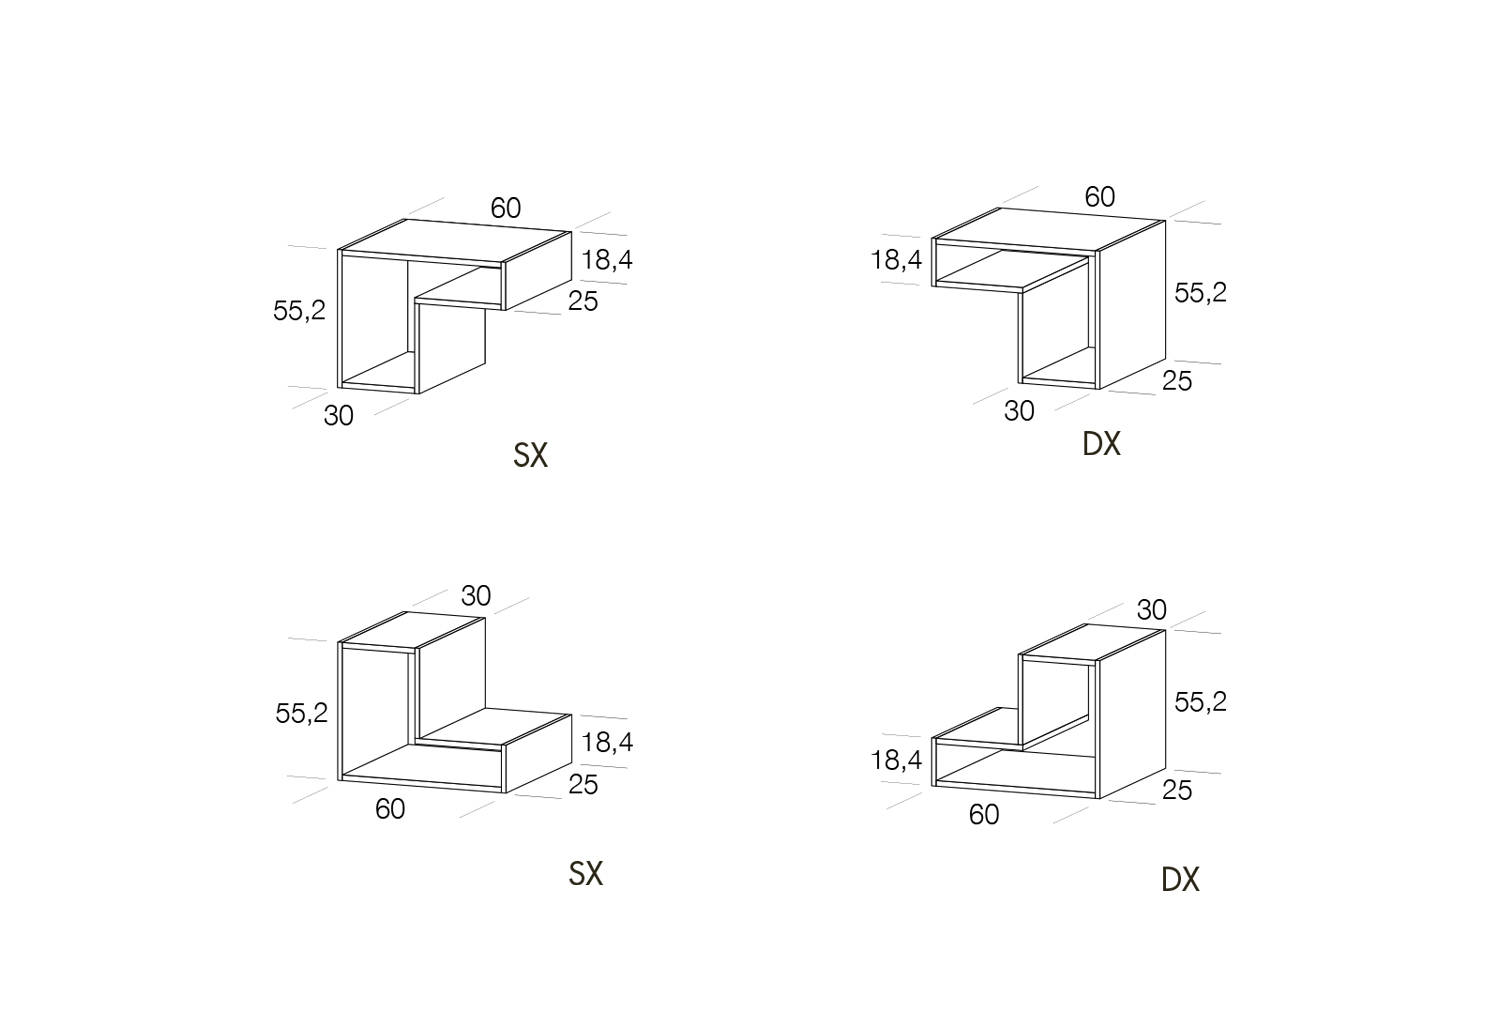 Shelves dimensions